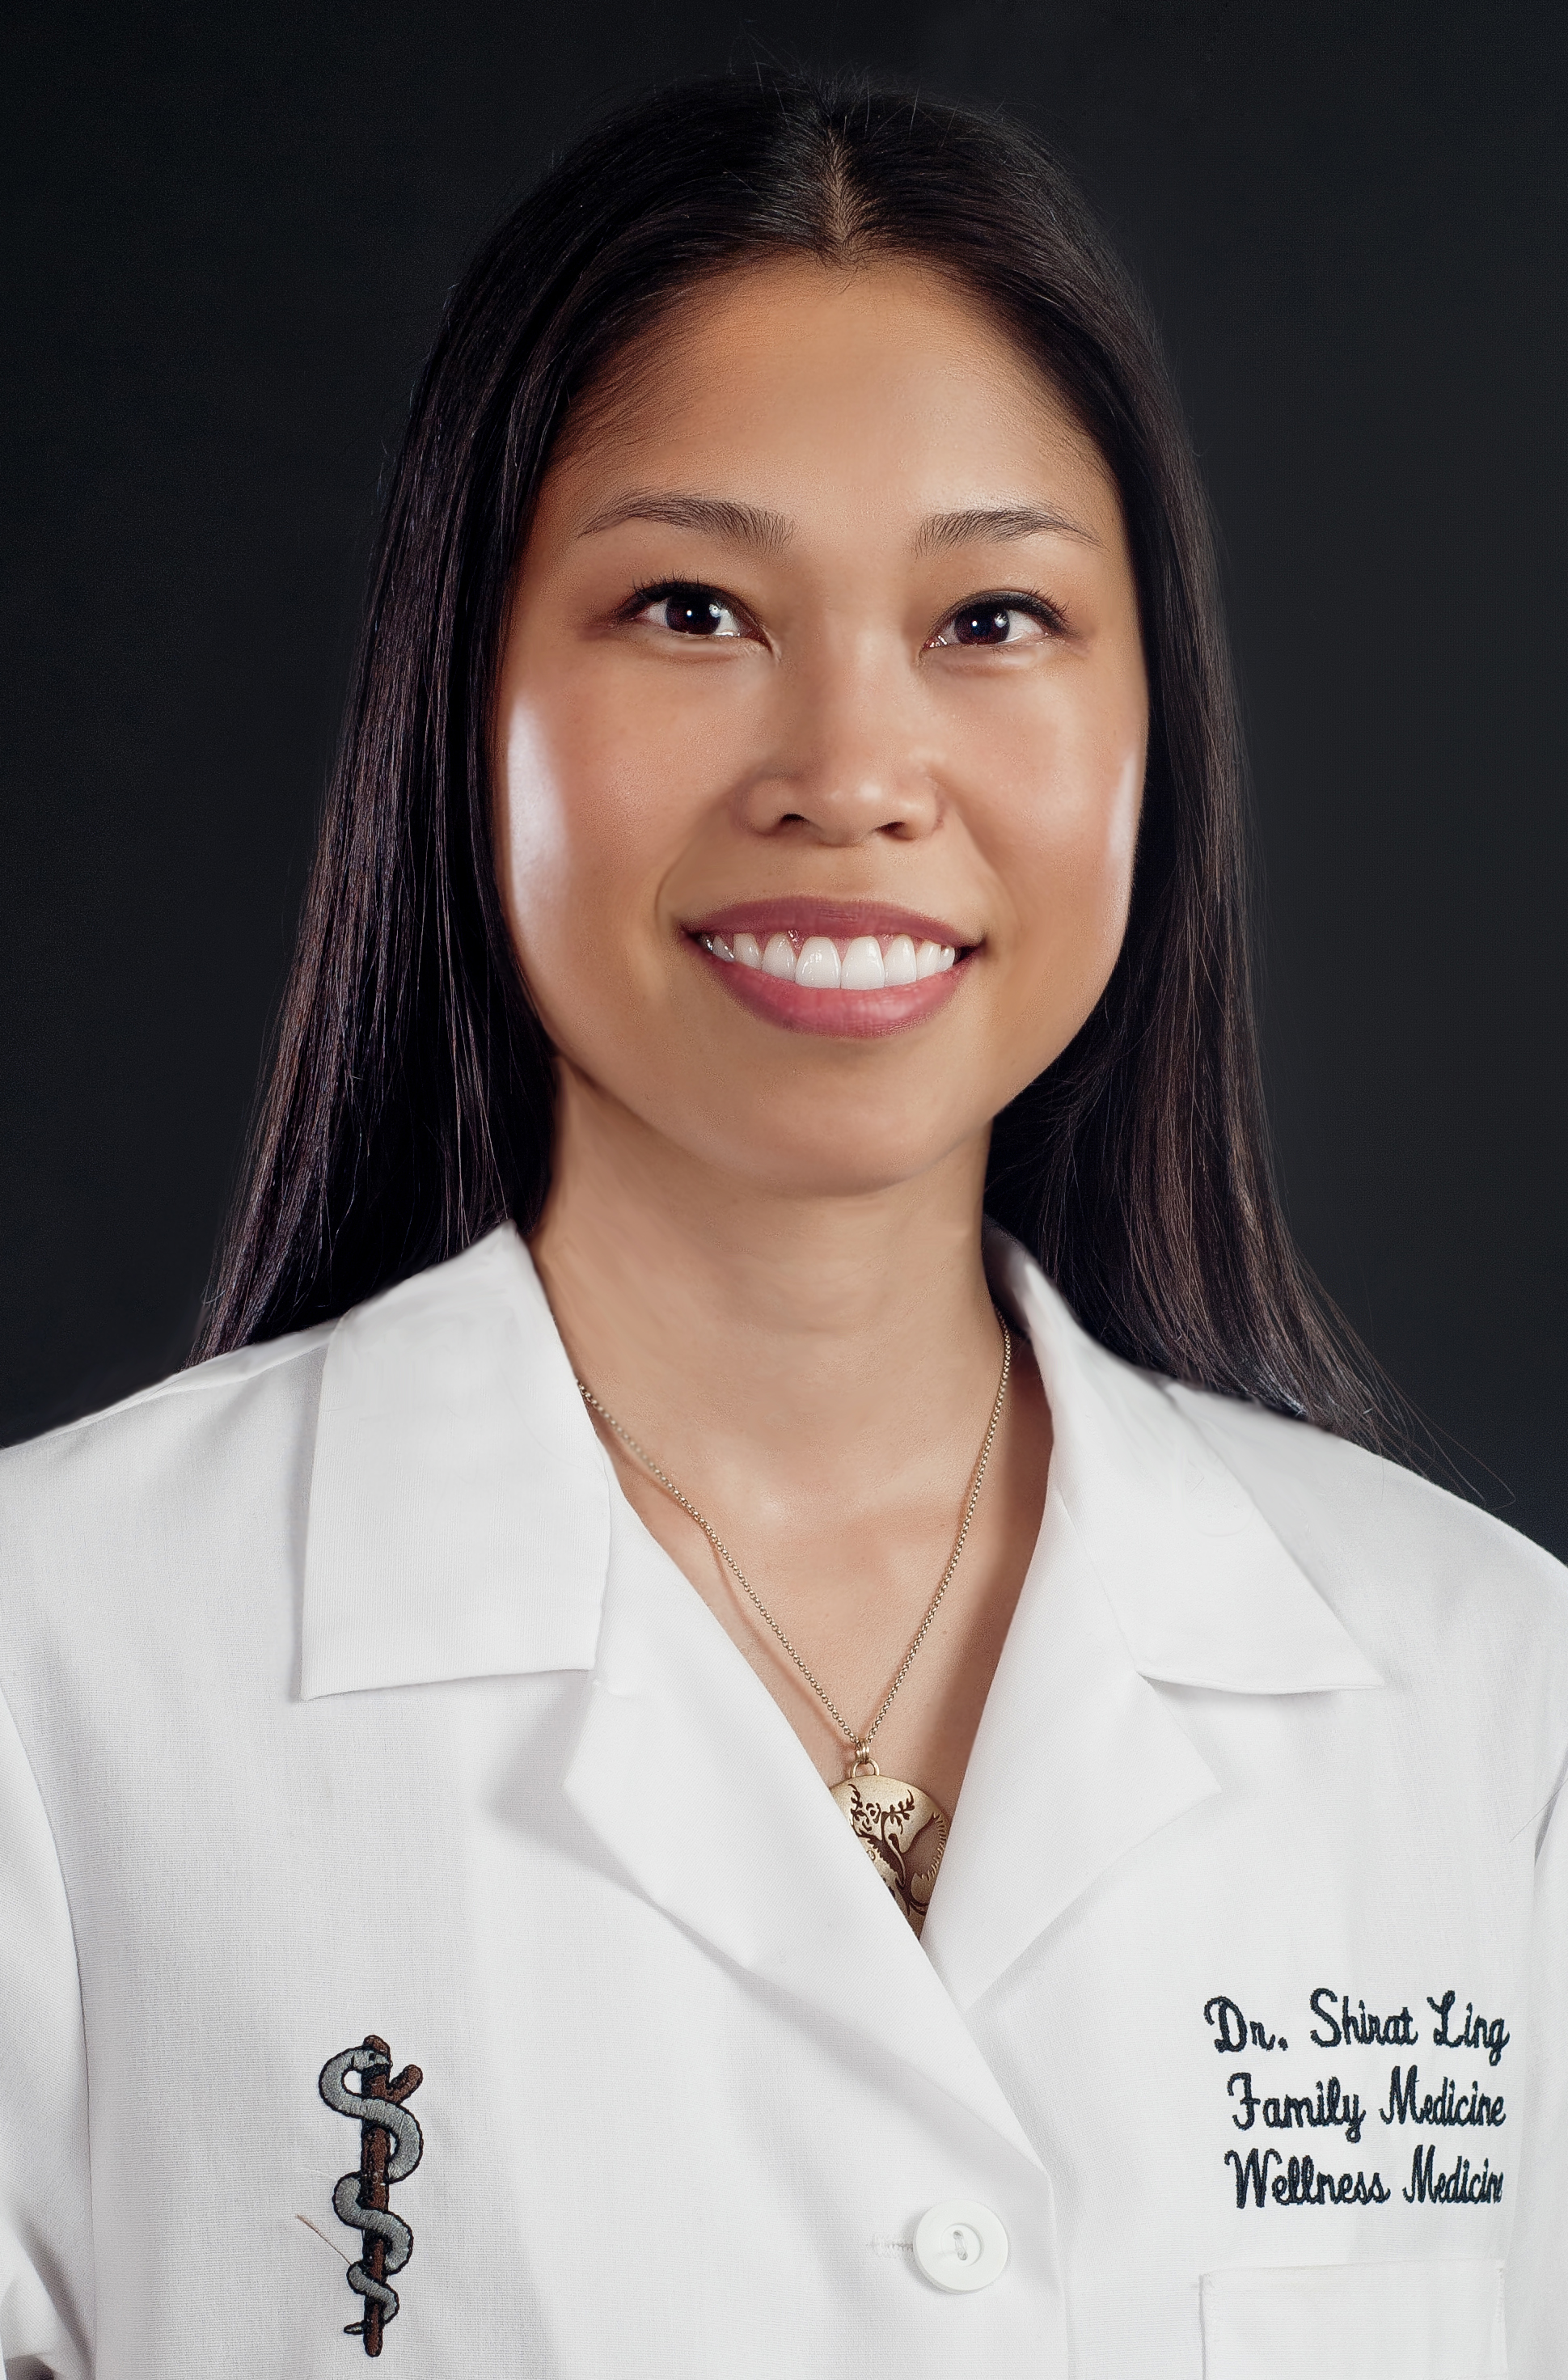 Dr. Ling